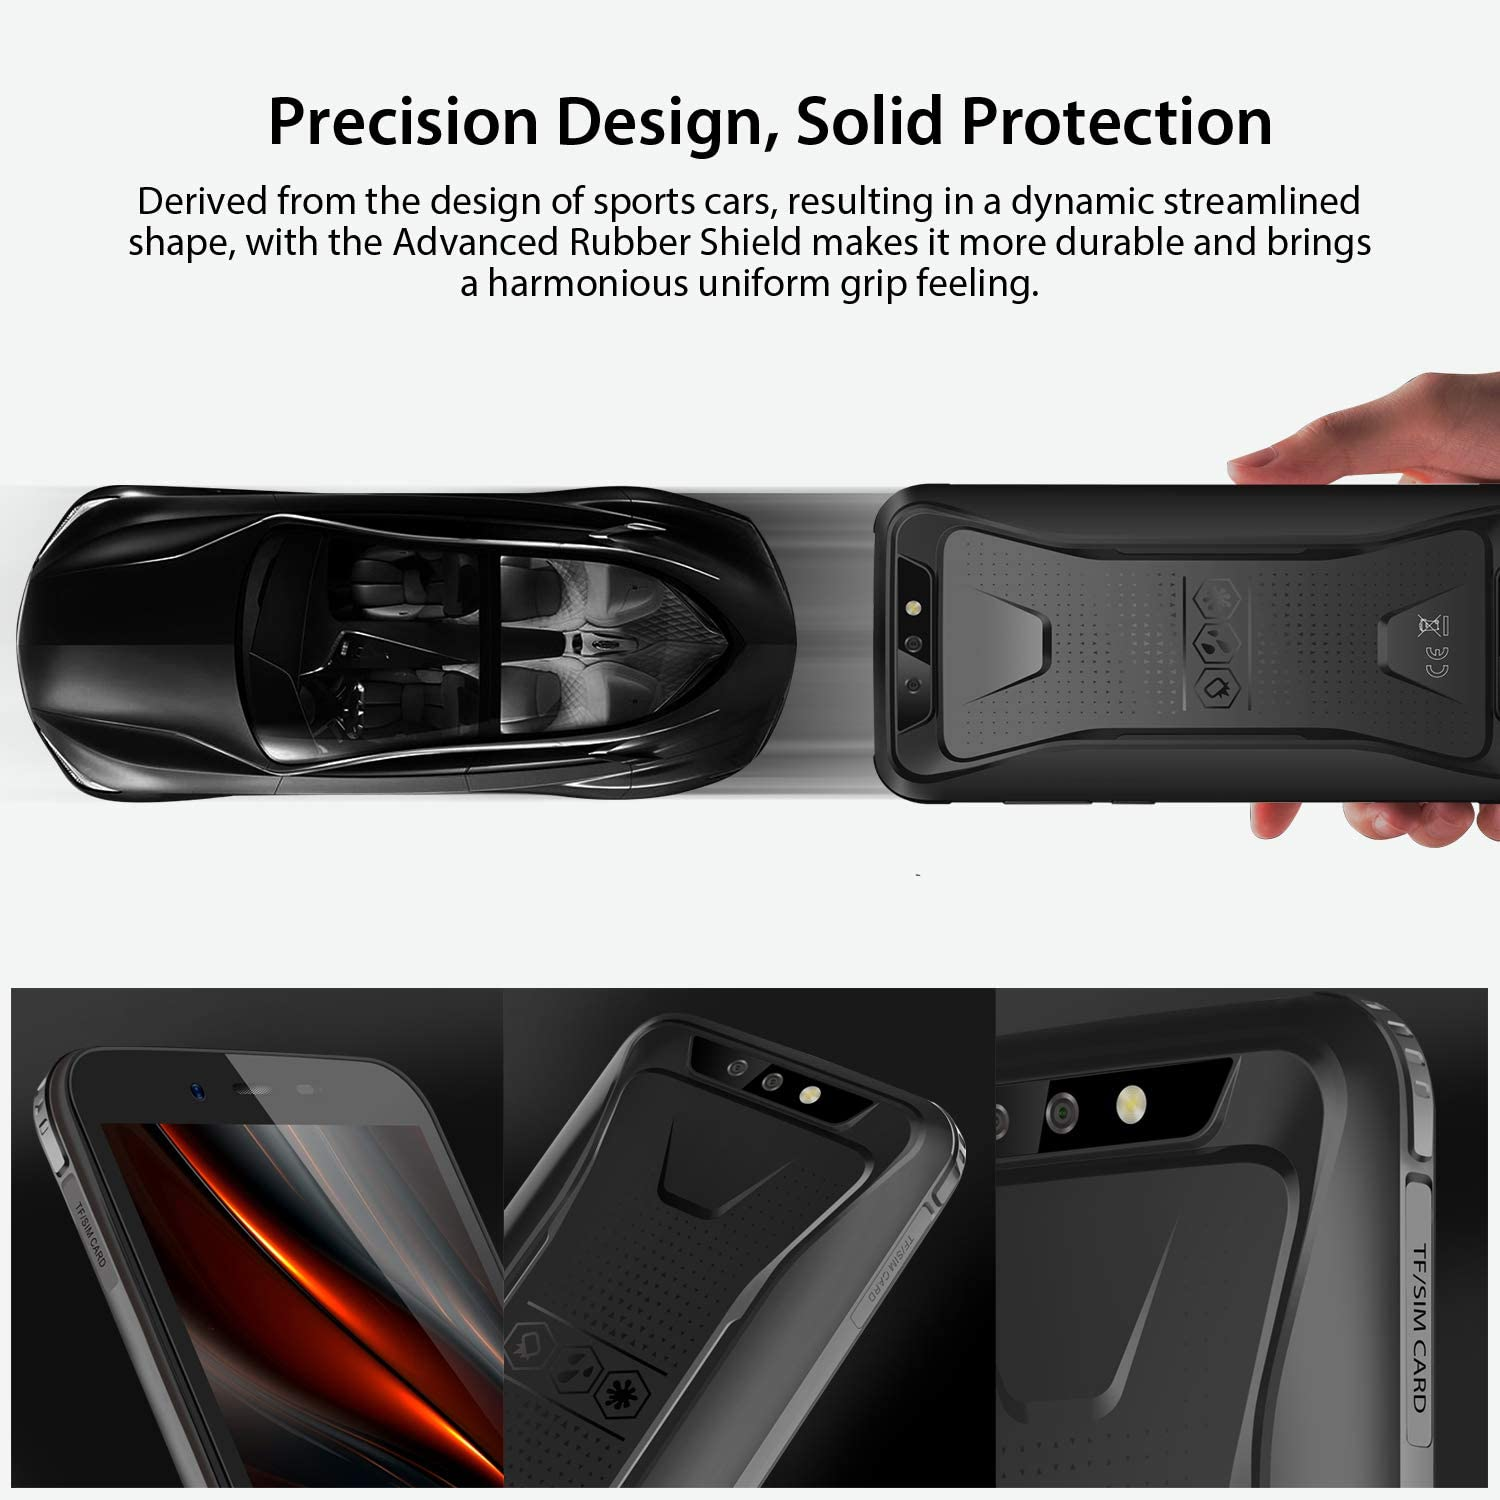 """Rugged Unlocked Cell Phones, Blackview BV5500 Pro 4G Smartphones IP68 Waterproof Drop Proof, 5.5"""" 3GB+16GB Dual SIM [Quad Core] Android 9.0 4400mAh Battery and Face ID Mobile Phones, Black: Electronics"""